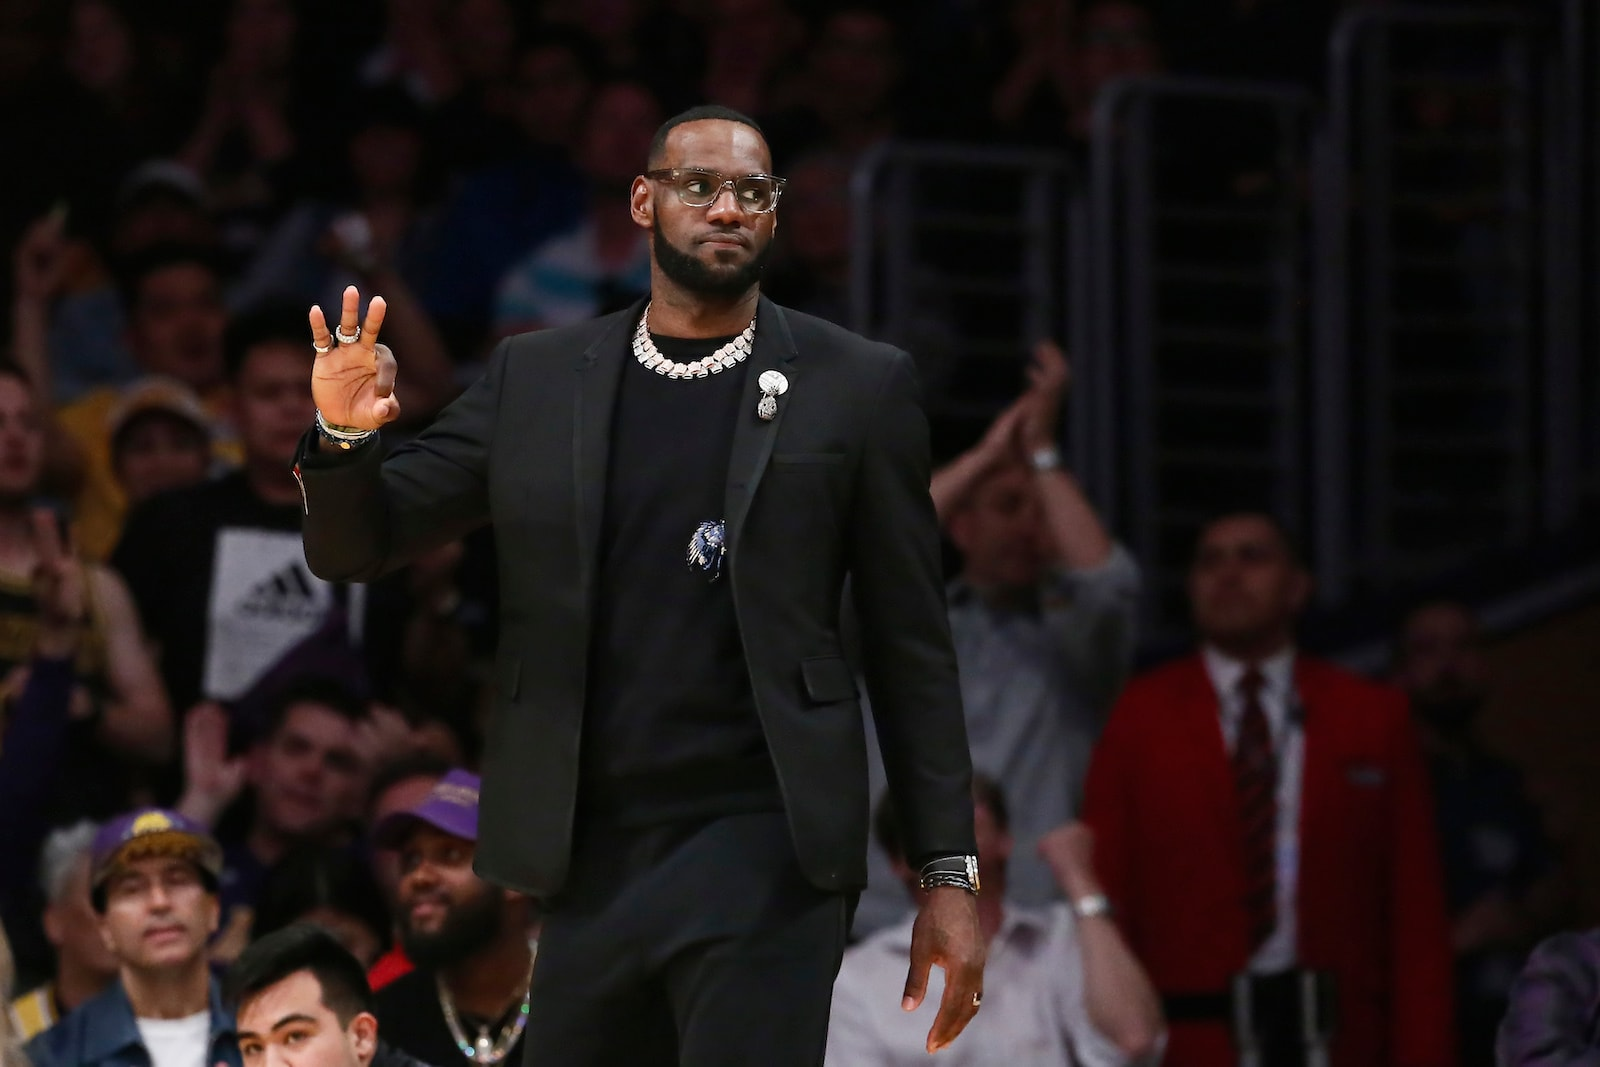 LeBron James #23 of the Los Angeles Lakers looks on against the Portland Trail Blazers on April 9, 2019 at STAPLES Center in Los Angeles, California